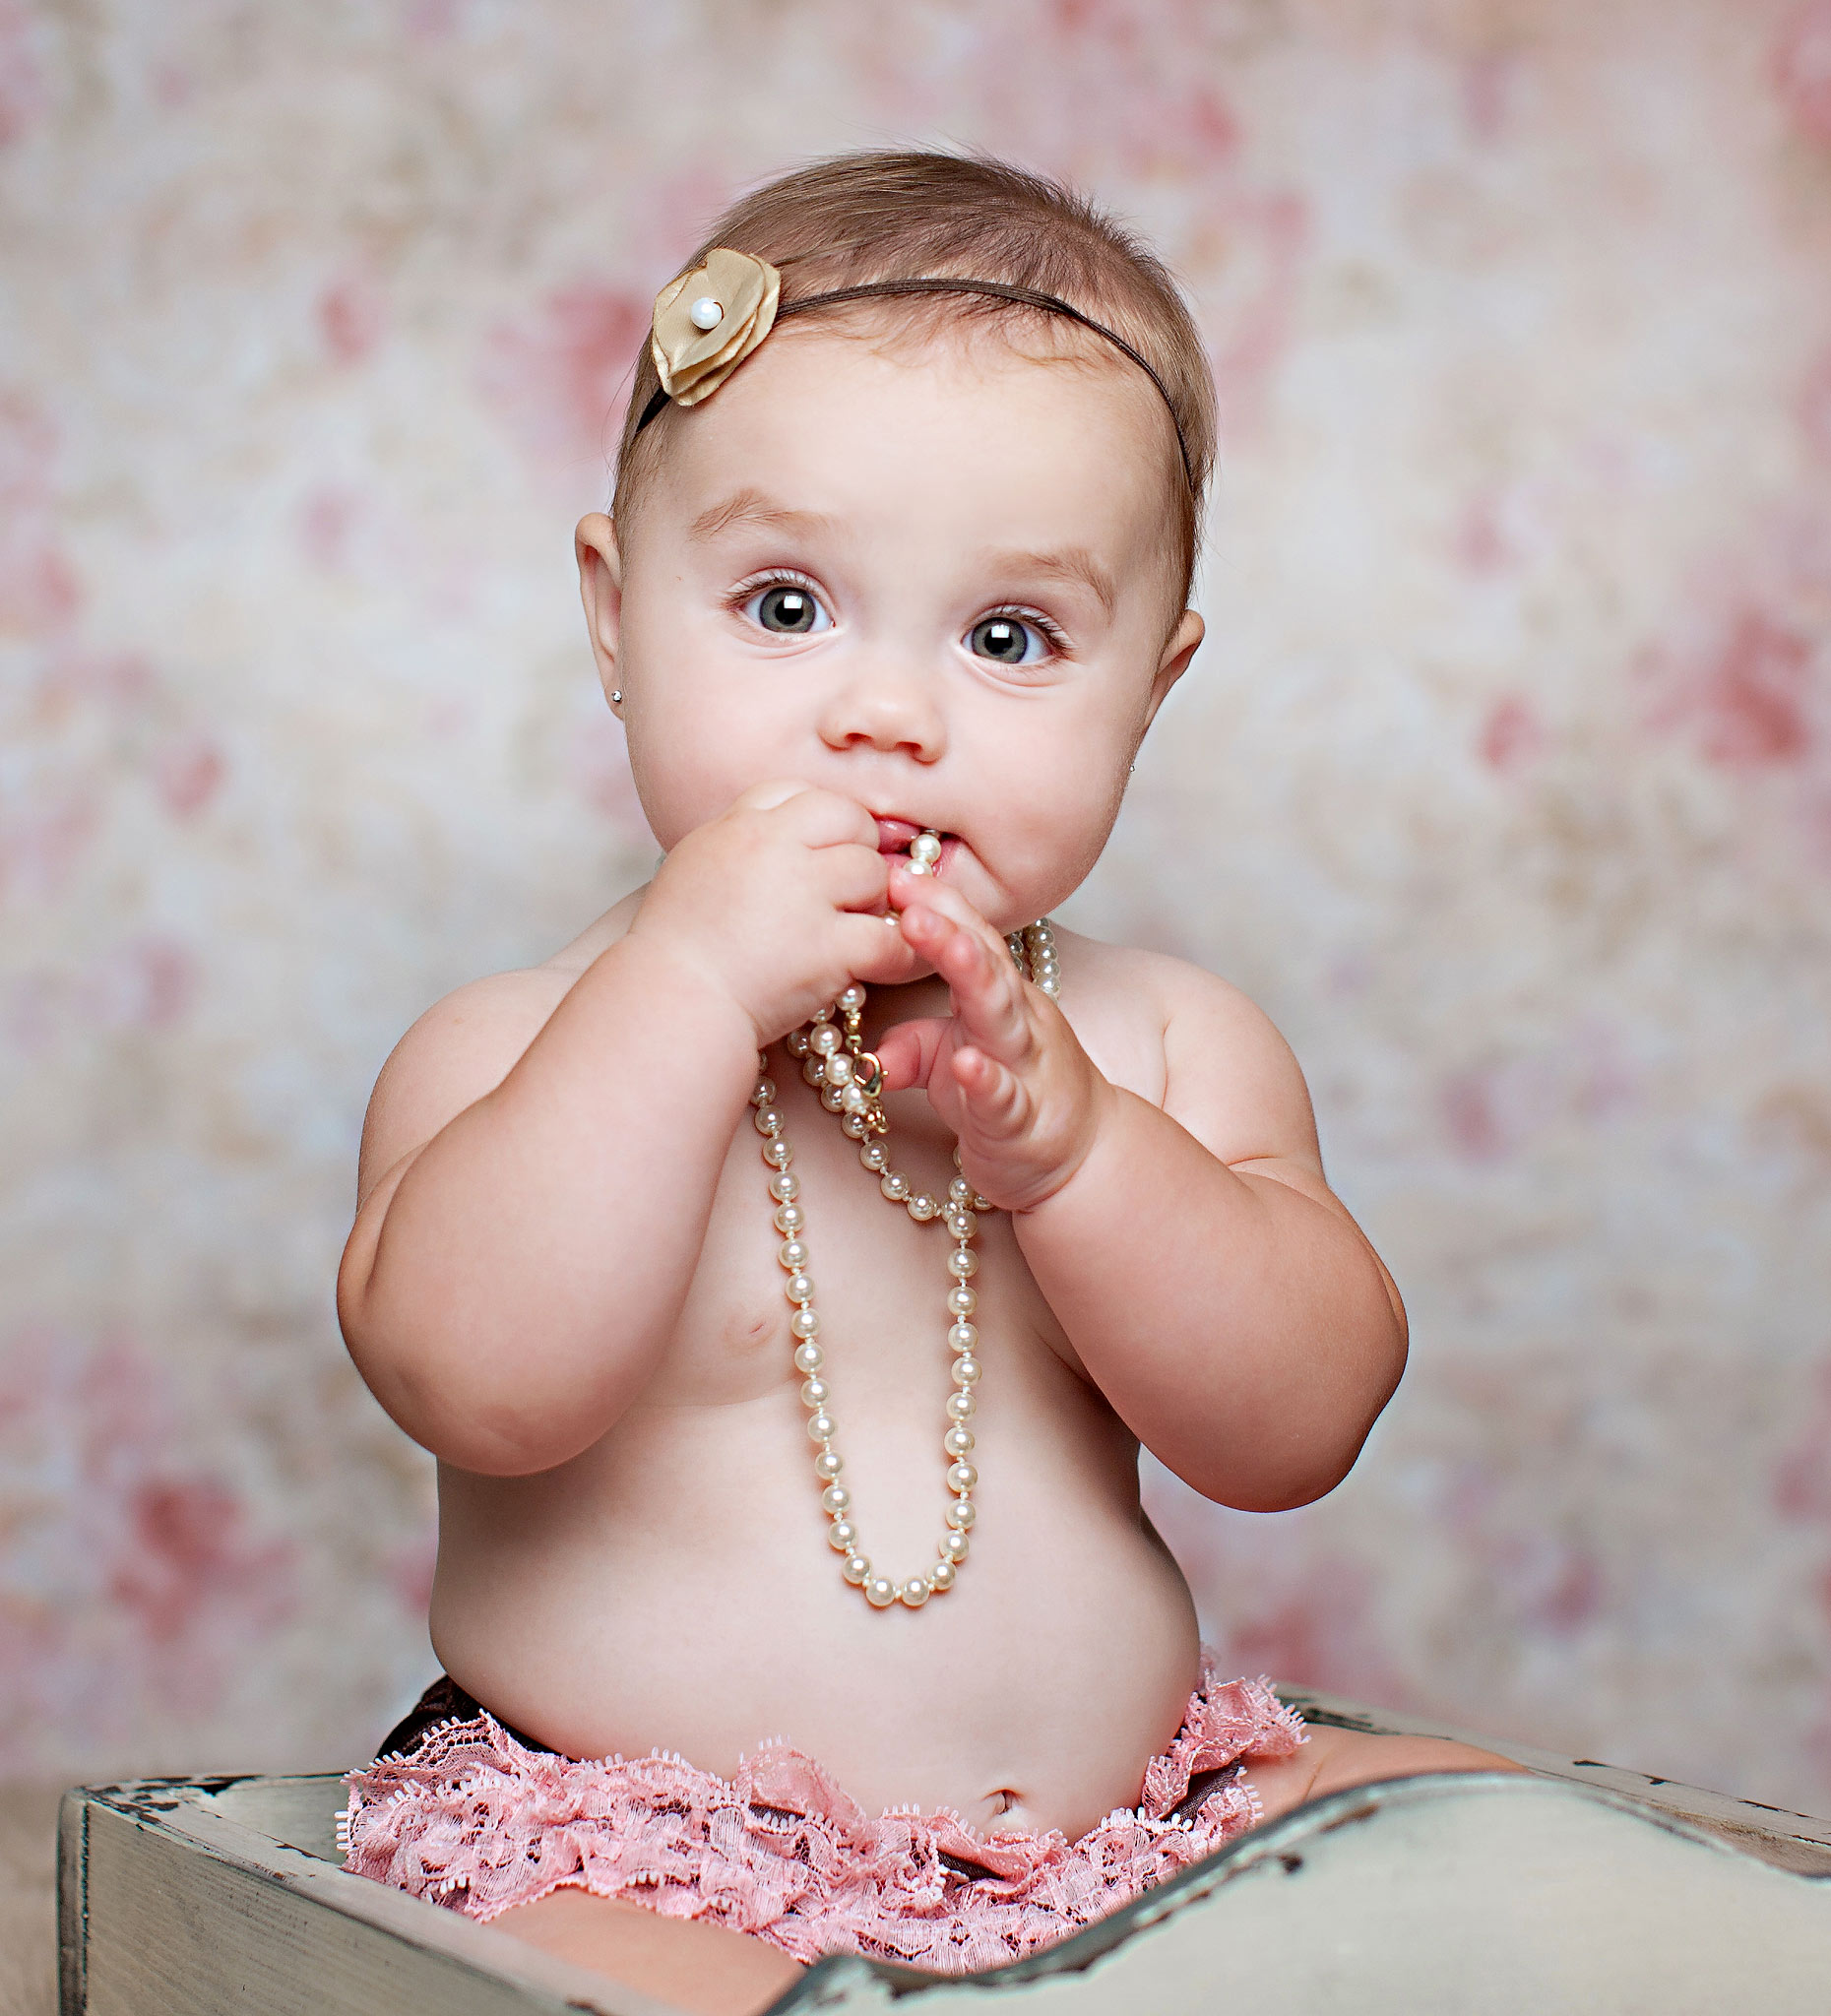 London, Ontario baby and child photographers